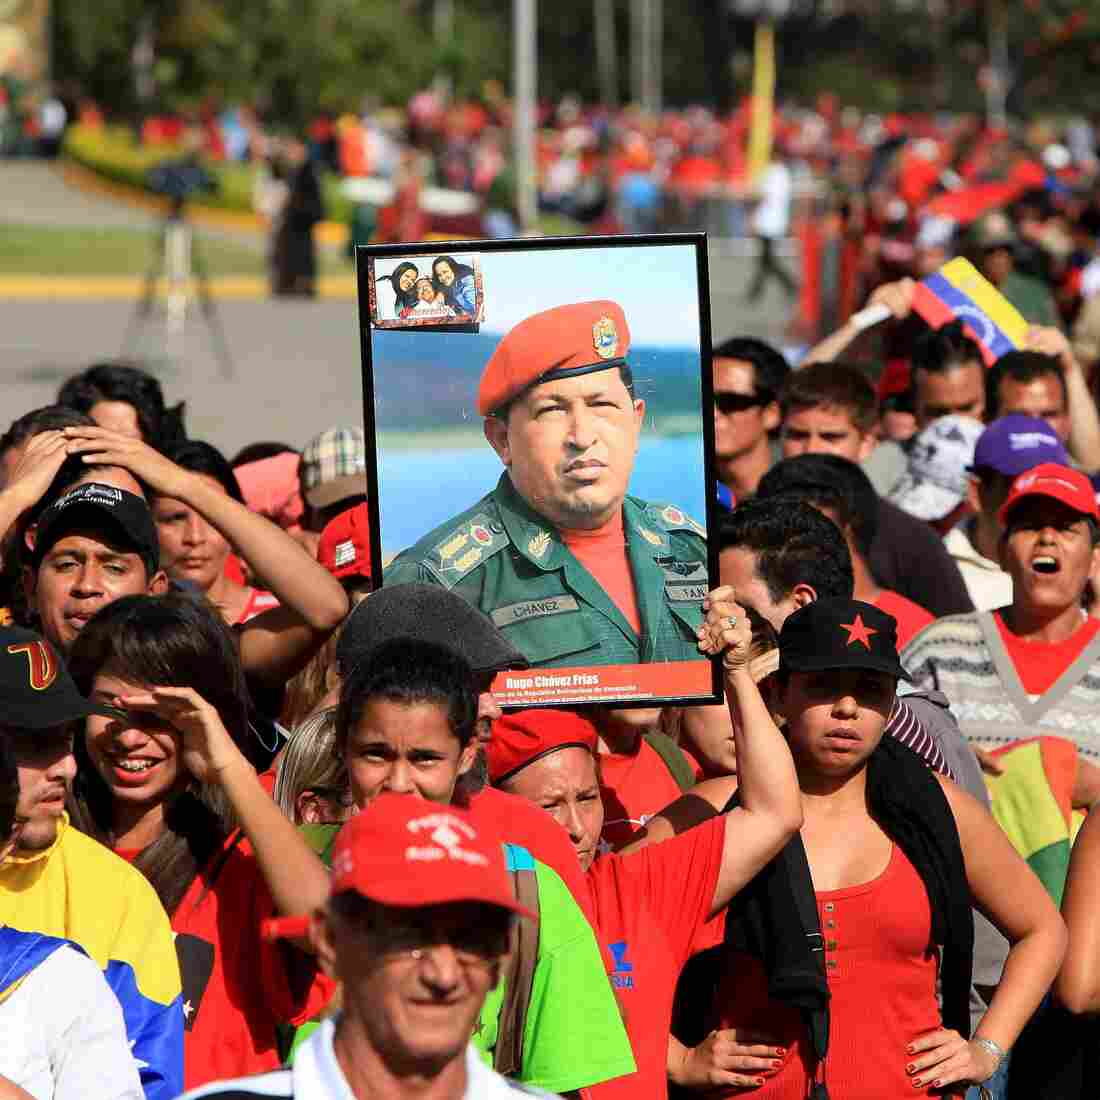 Venezuelans Mourn The Fiery Leader They Had Deep Connections To